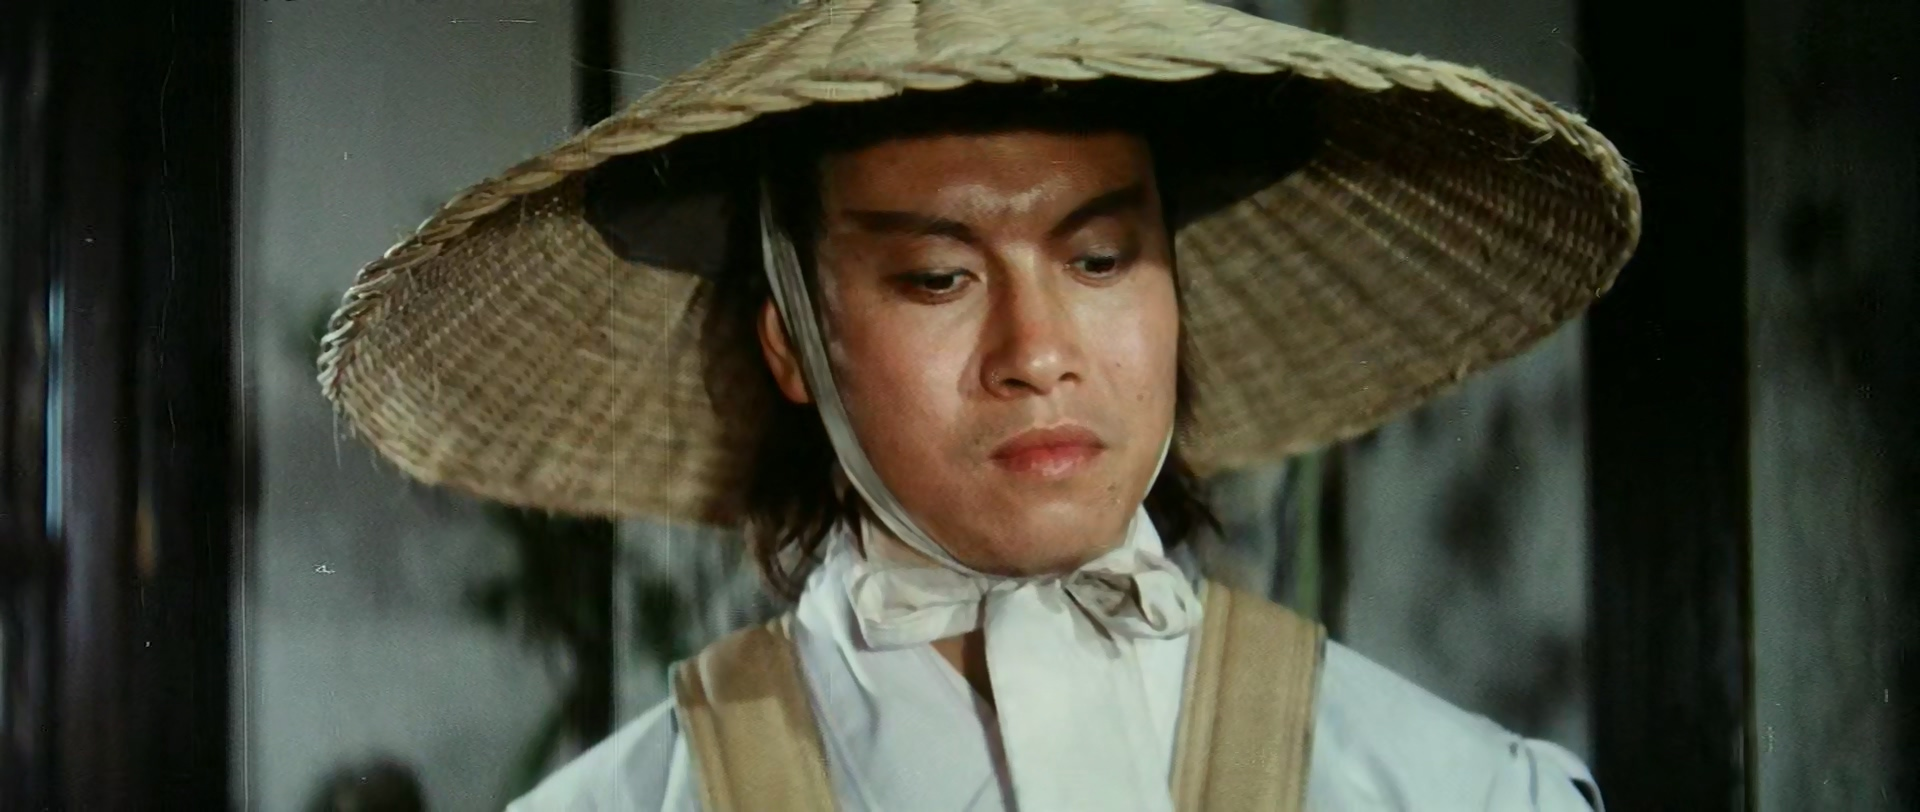 [bbs.yyh3d.com]铁捕金鹰.Fury of the Shaolin Master.1978.BluRay.x265.3Audios..jpg